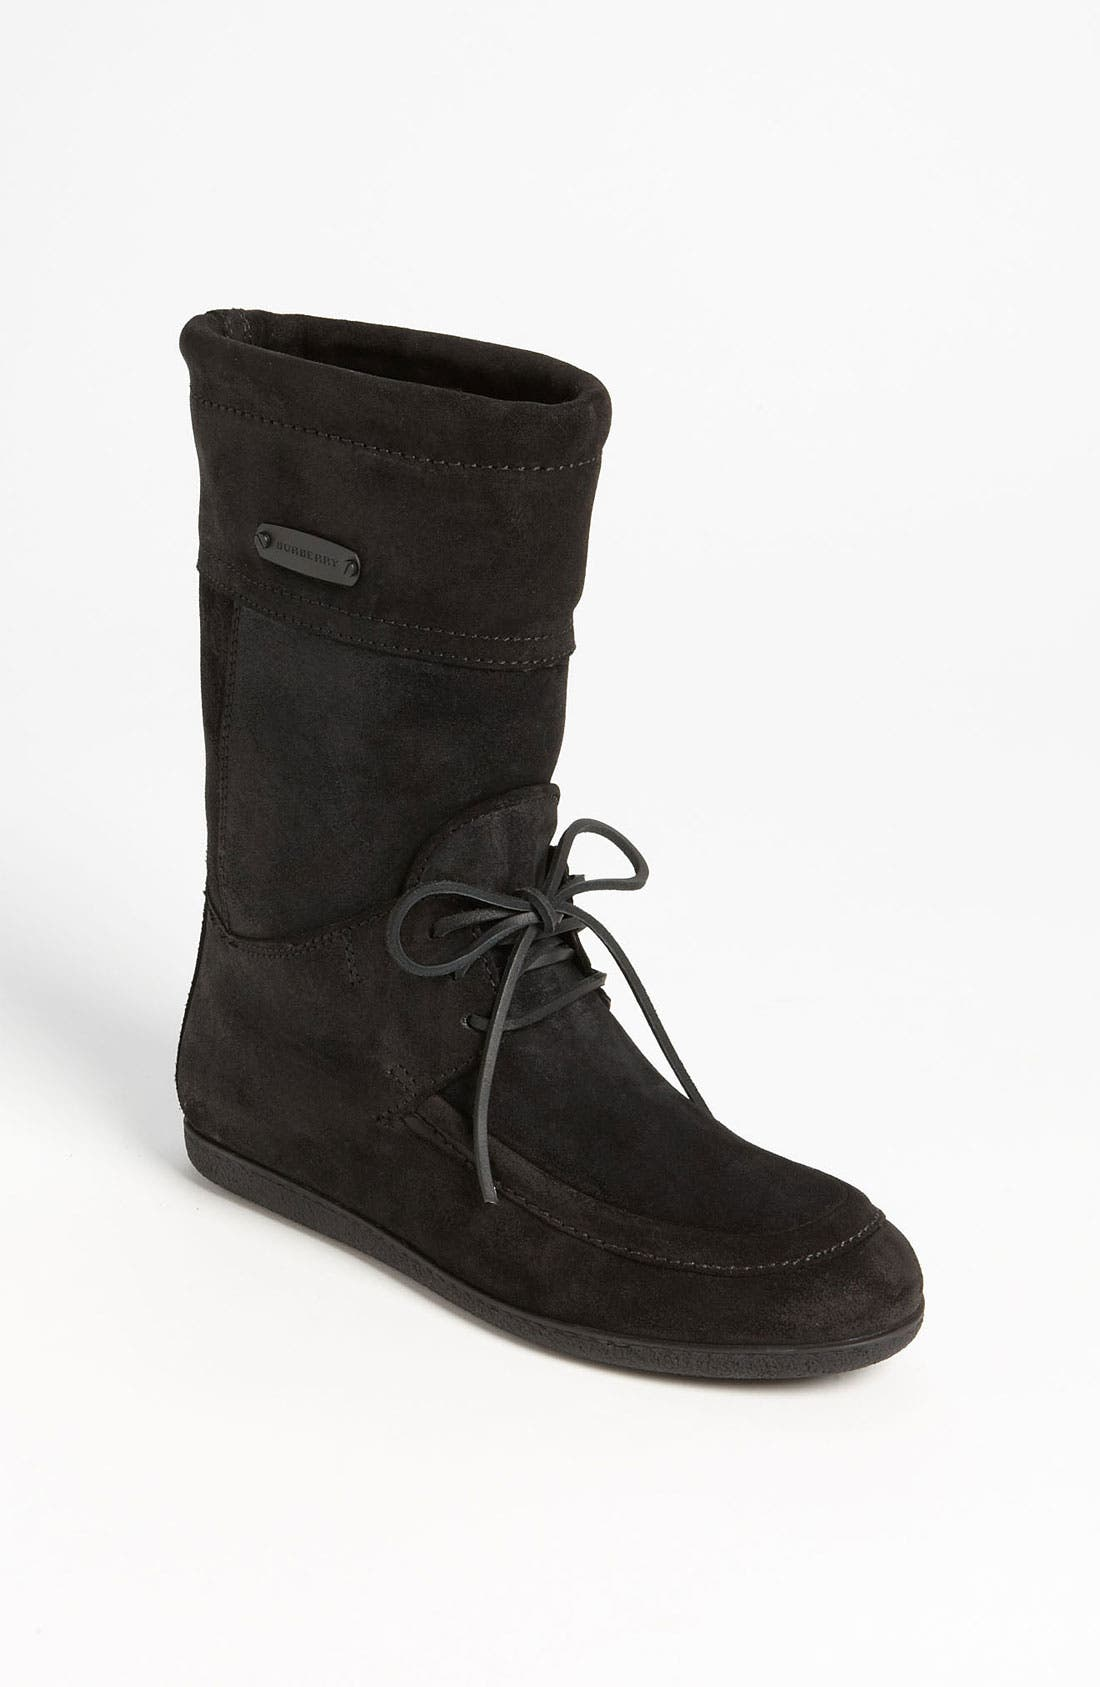 Main Image - BURBERRY EDENDALE BOOT